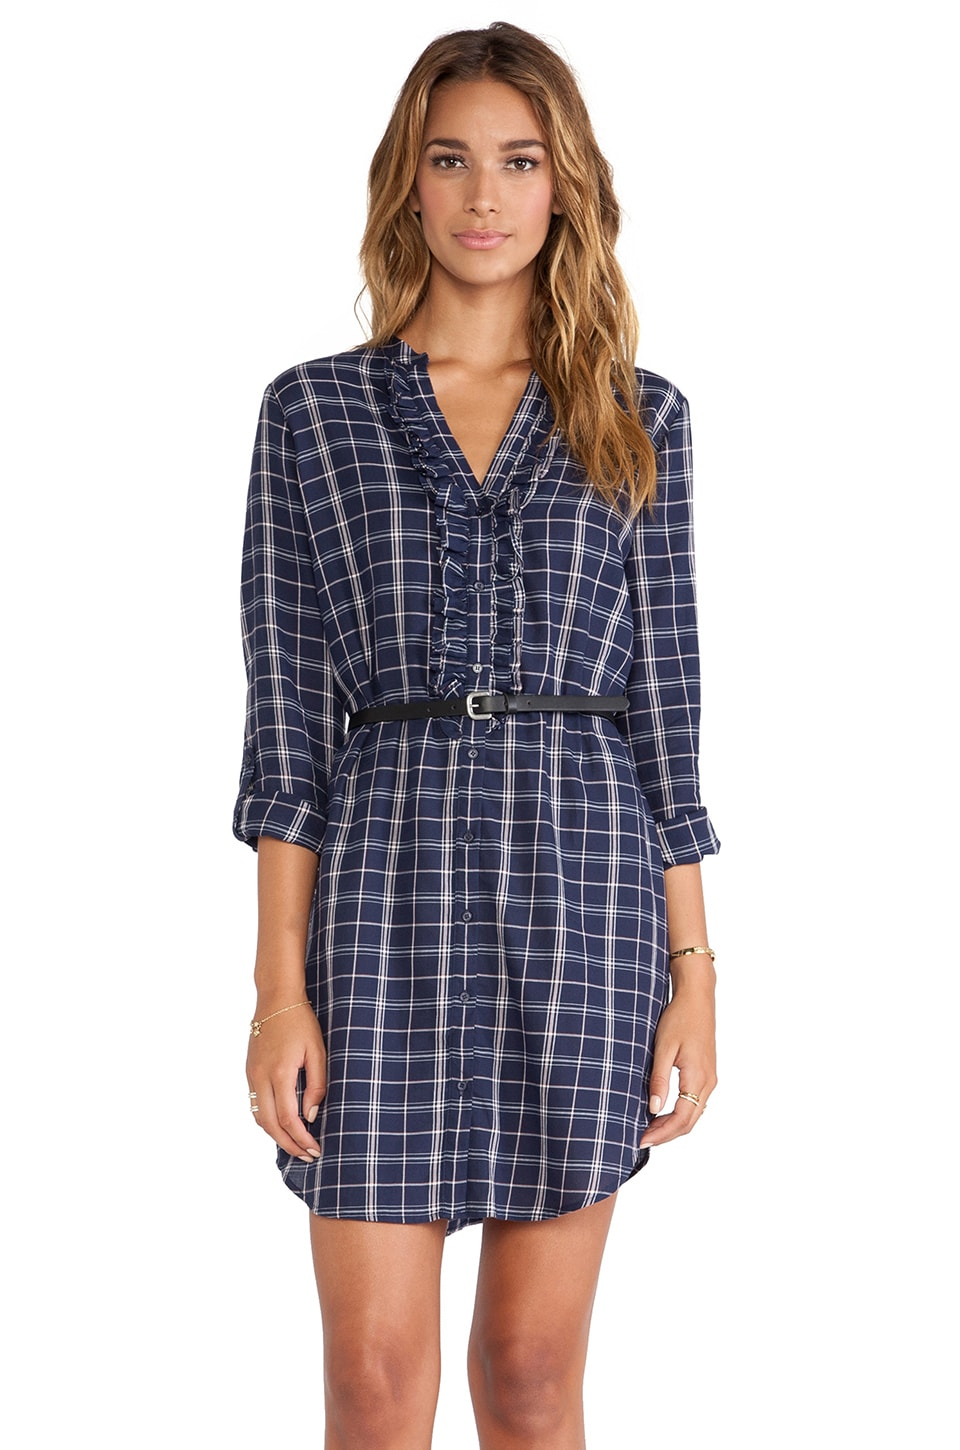 Joie Jessalyn Plaid Dress in Dark Navy